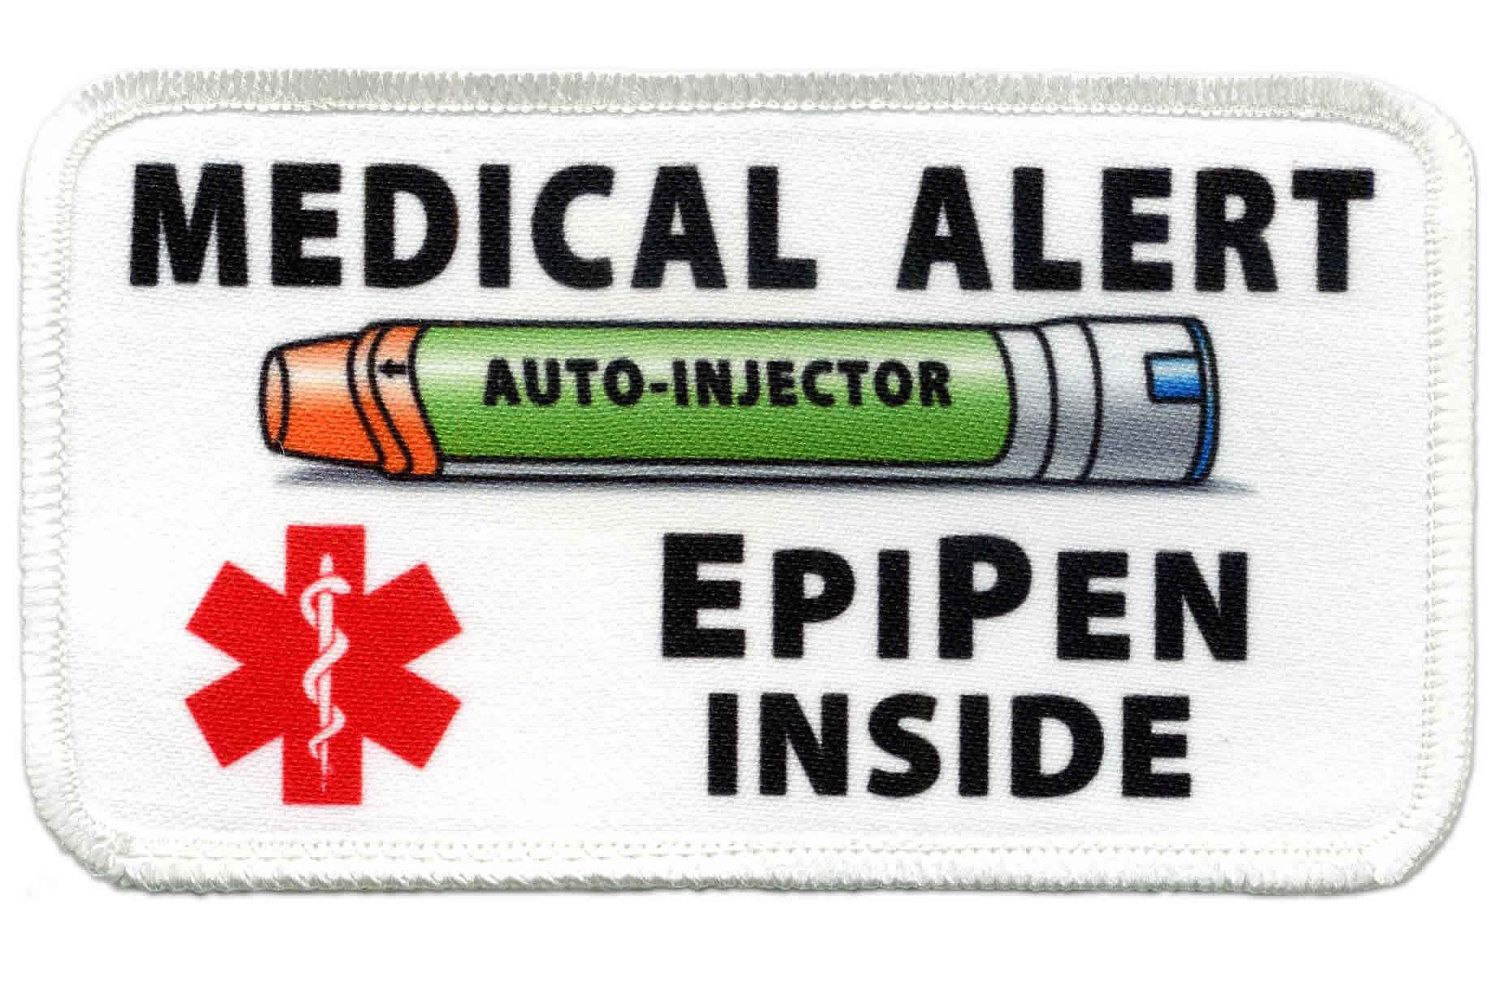 small resolution of epipen jr auto injector inside medical alert food allergy warning patch 4 50 via etsy